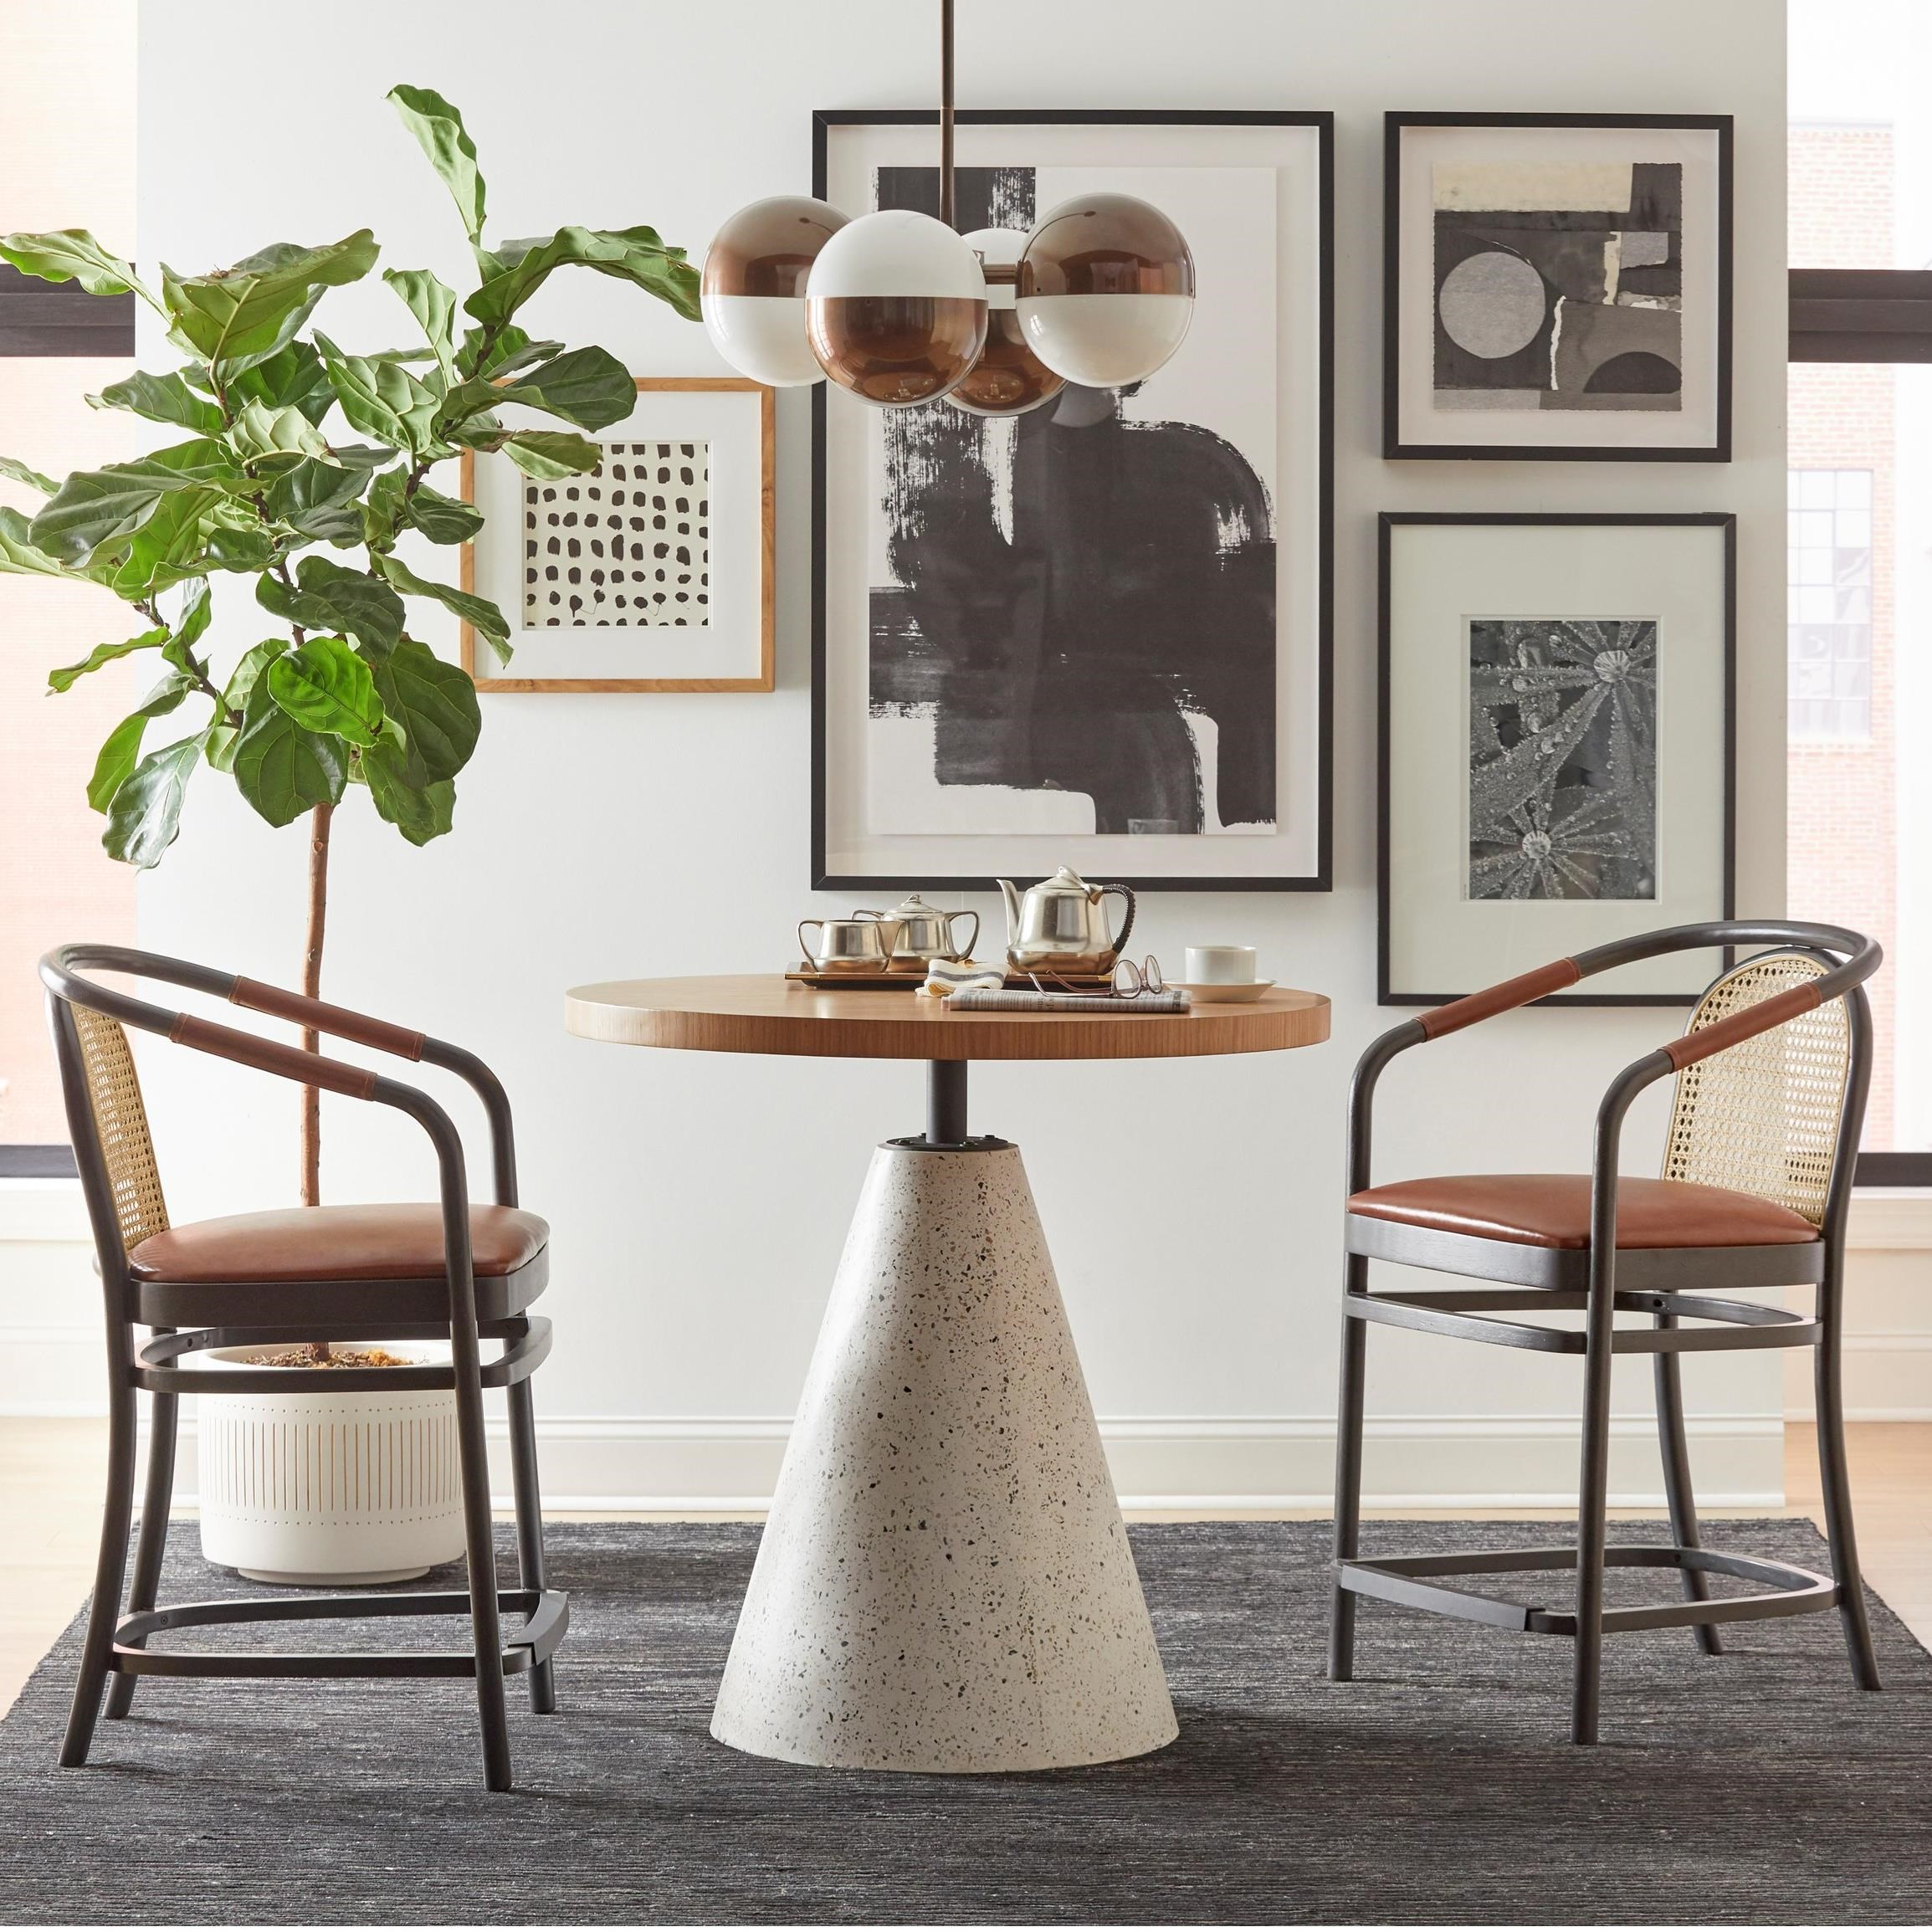 Bobby Berk Table and Chair Set by Klien Furniture at Sprintz Furniture